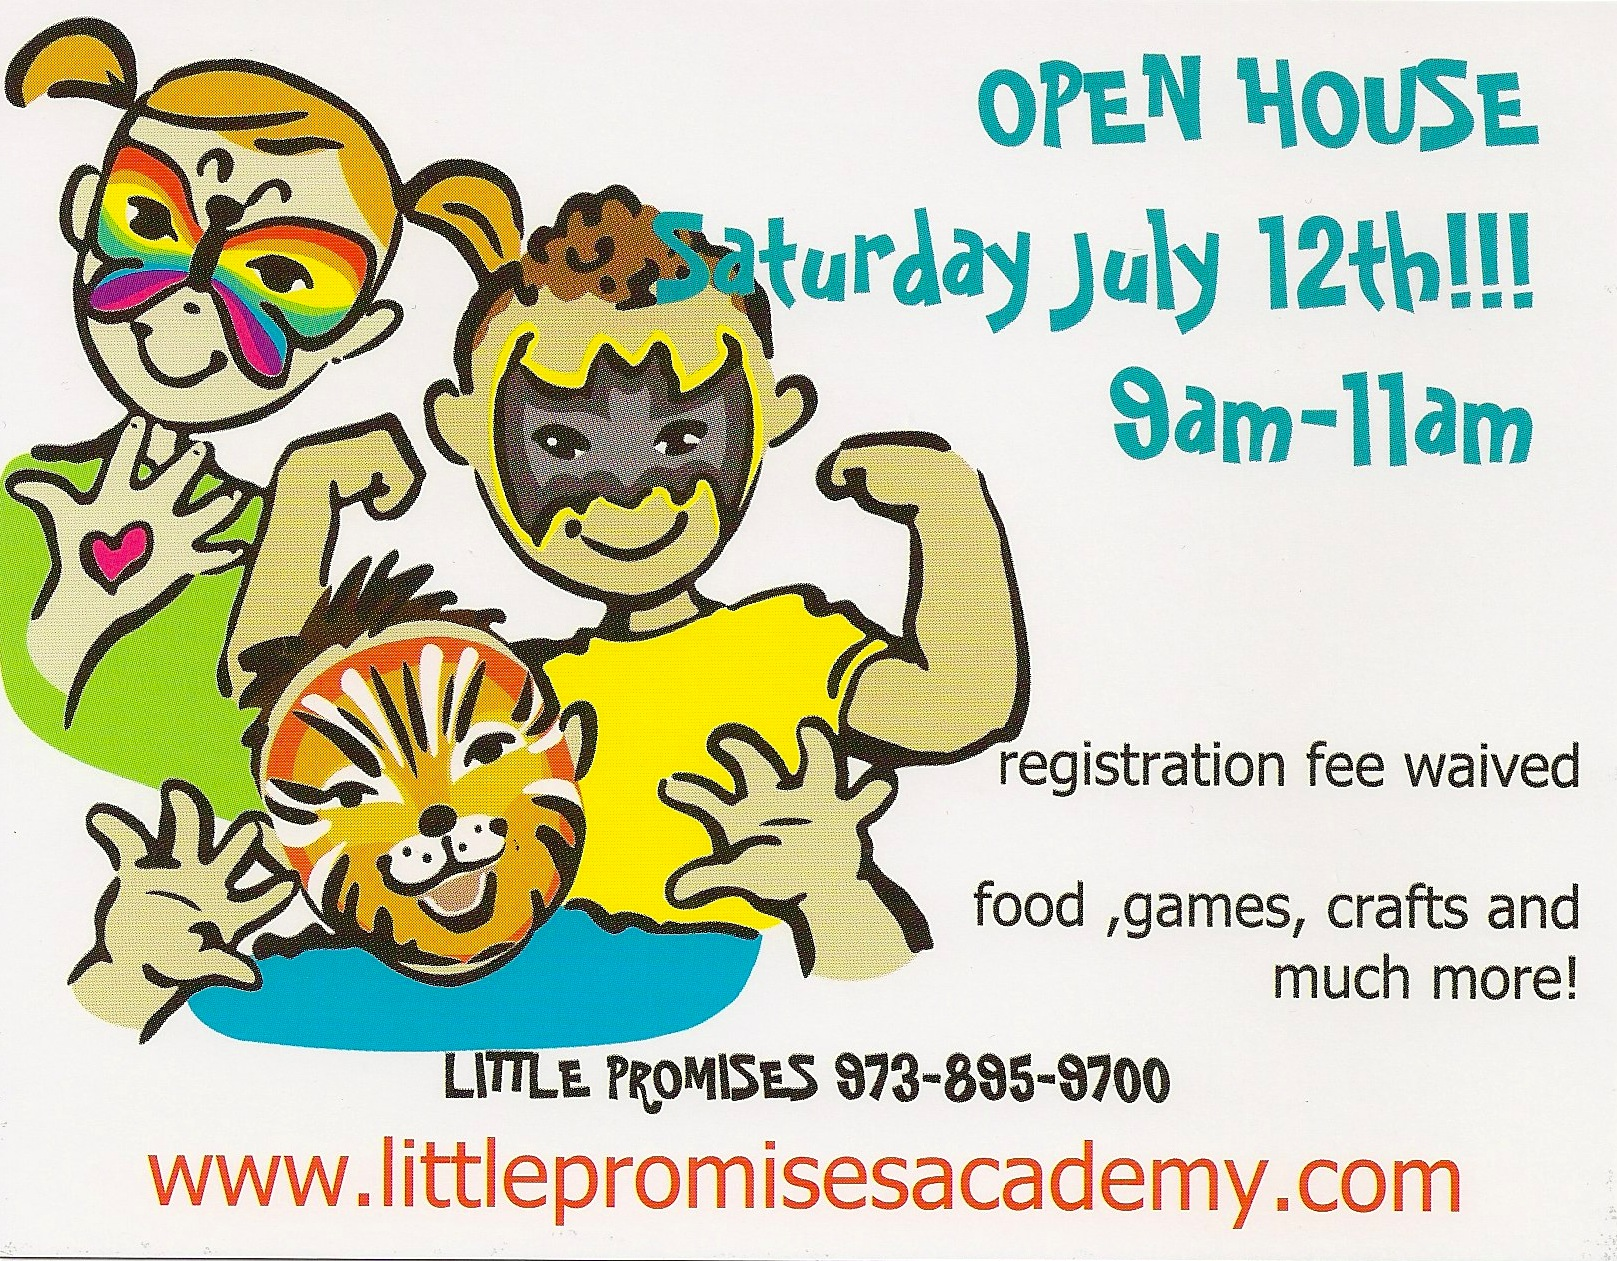 Little Promises Academy - Open House